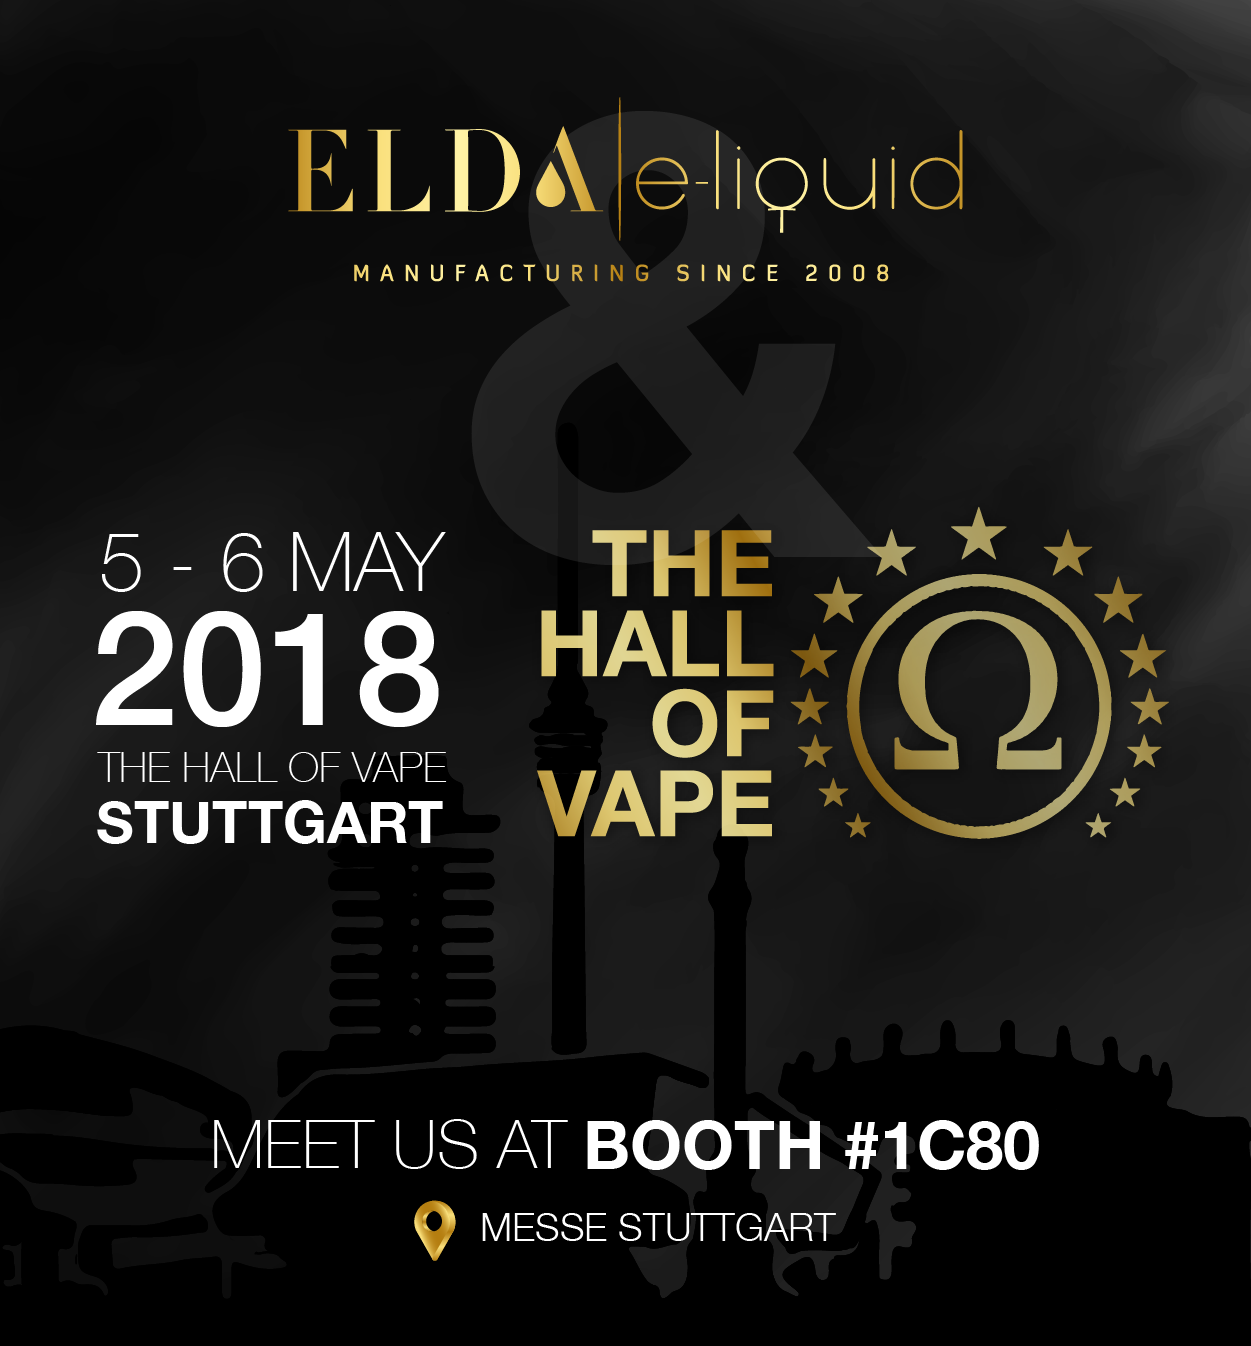 Meet Elda team at The Hall of Vape